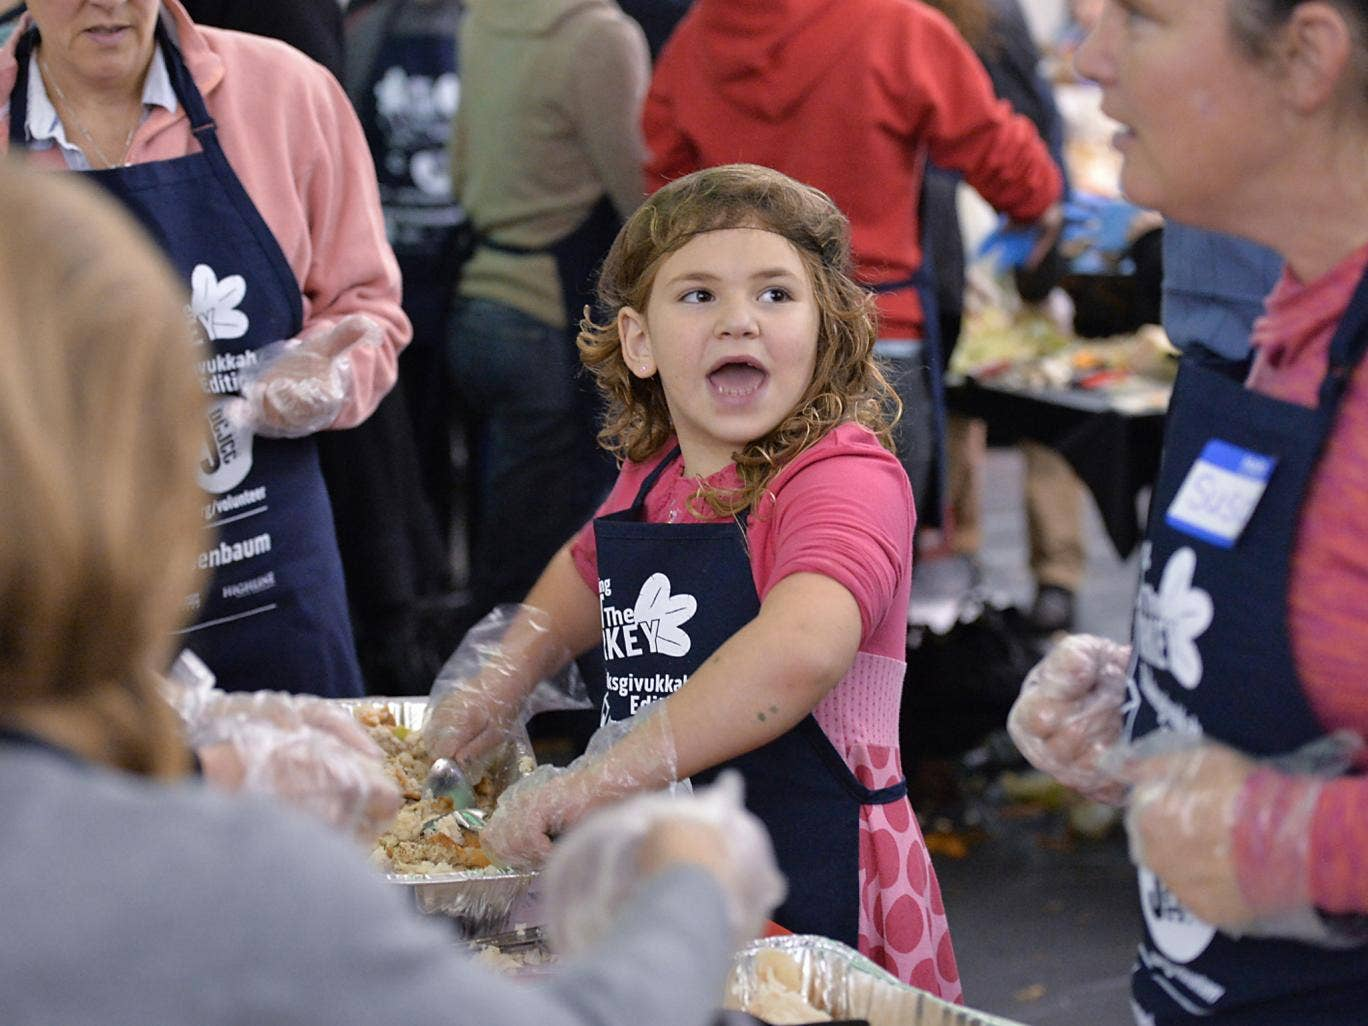 People prepare Thanksgiving meals for those in need at the District of Columbia Jewish Community Center in Washington as America prepares to celebrate Thanksgiving in its rare overlap with the Jewish holiday of Hanukkah, prompting the center to dub it 'Th